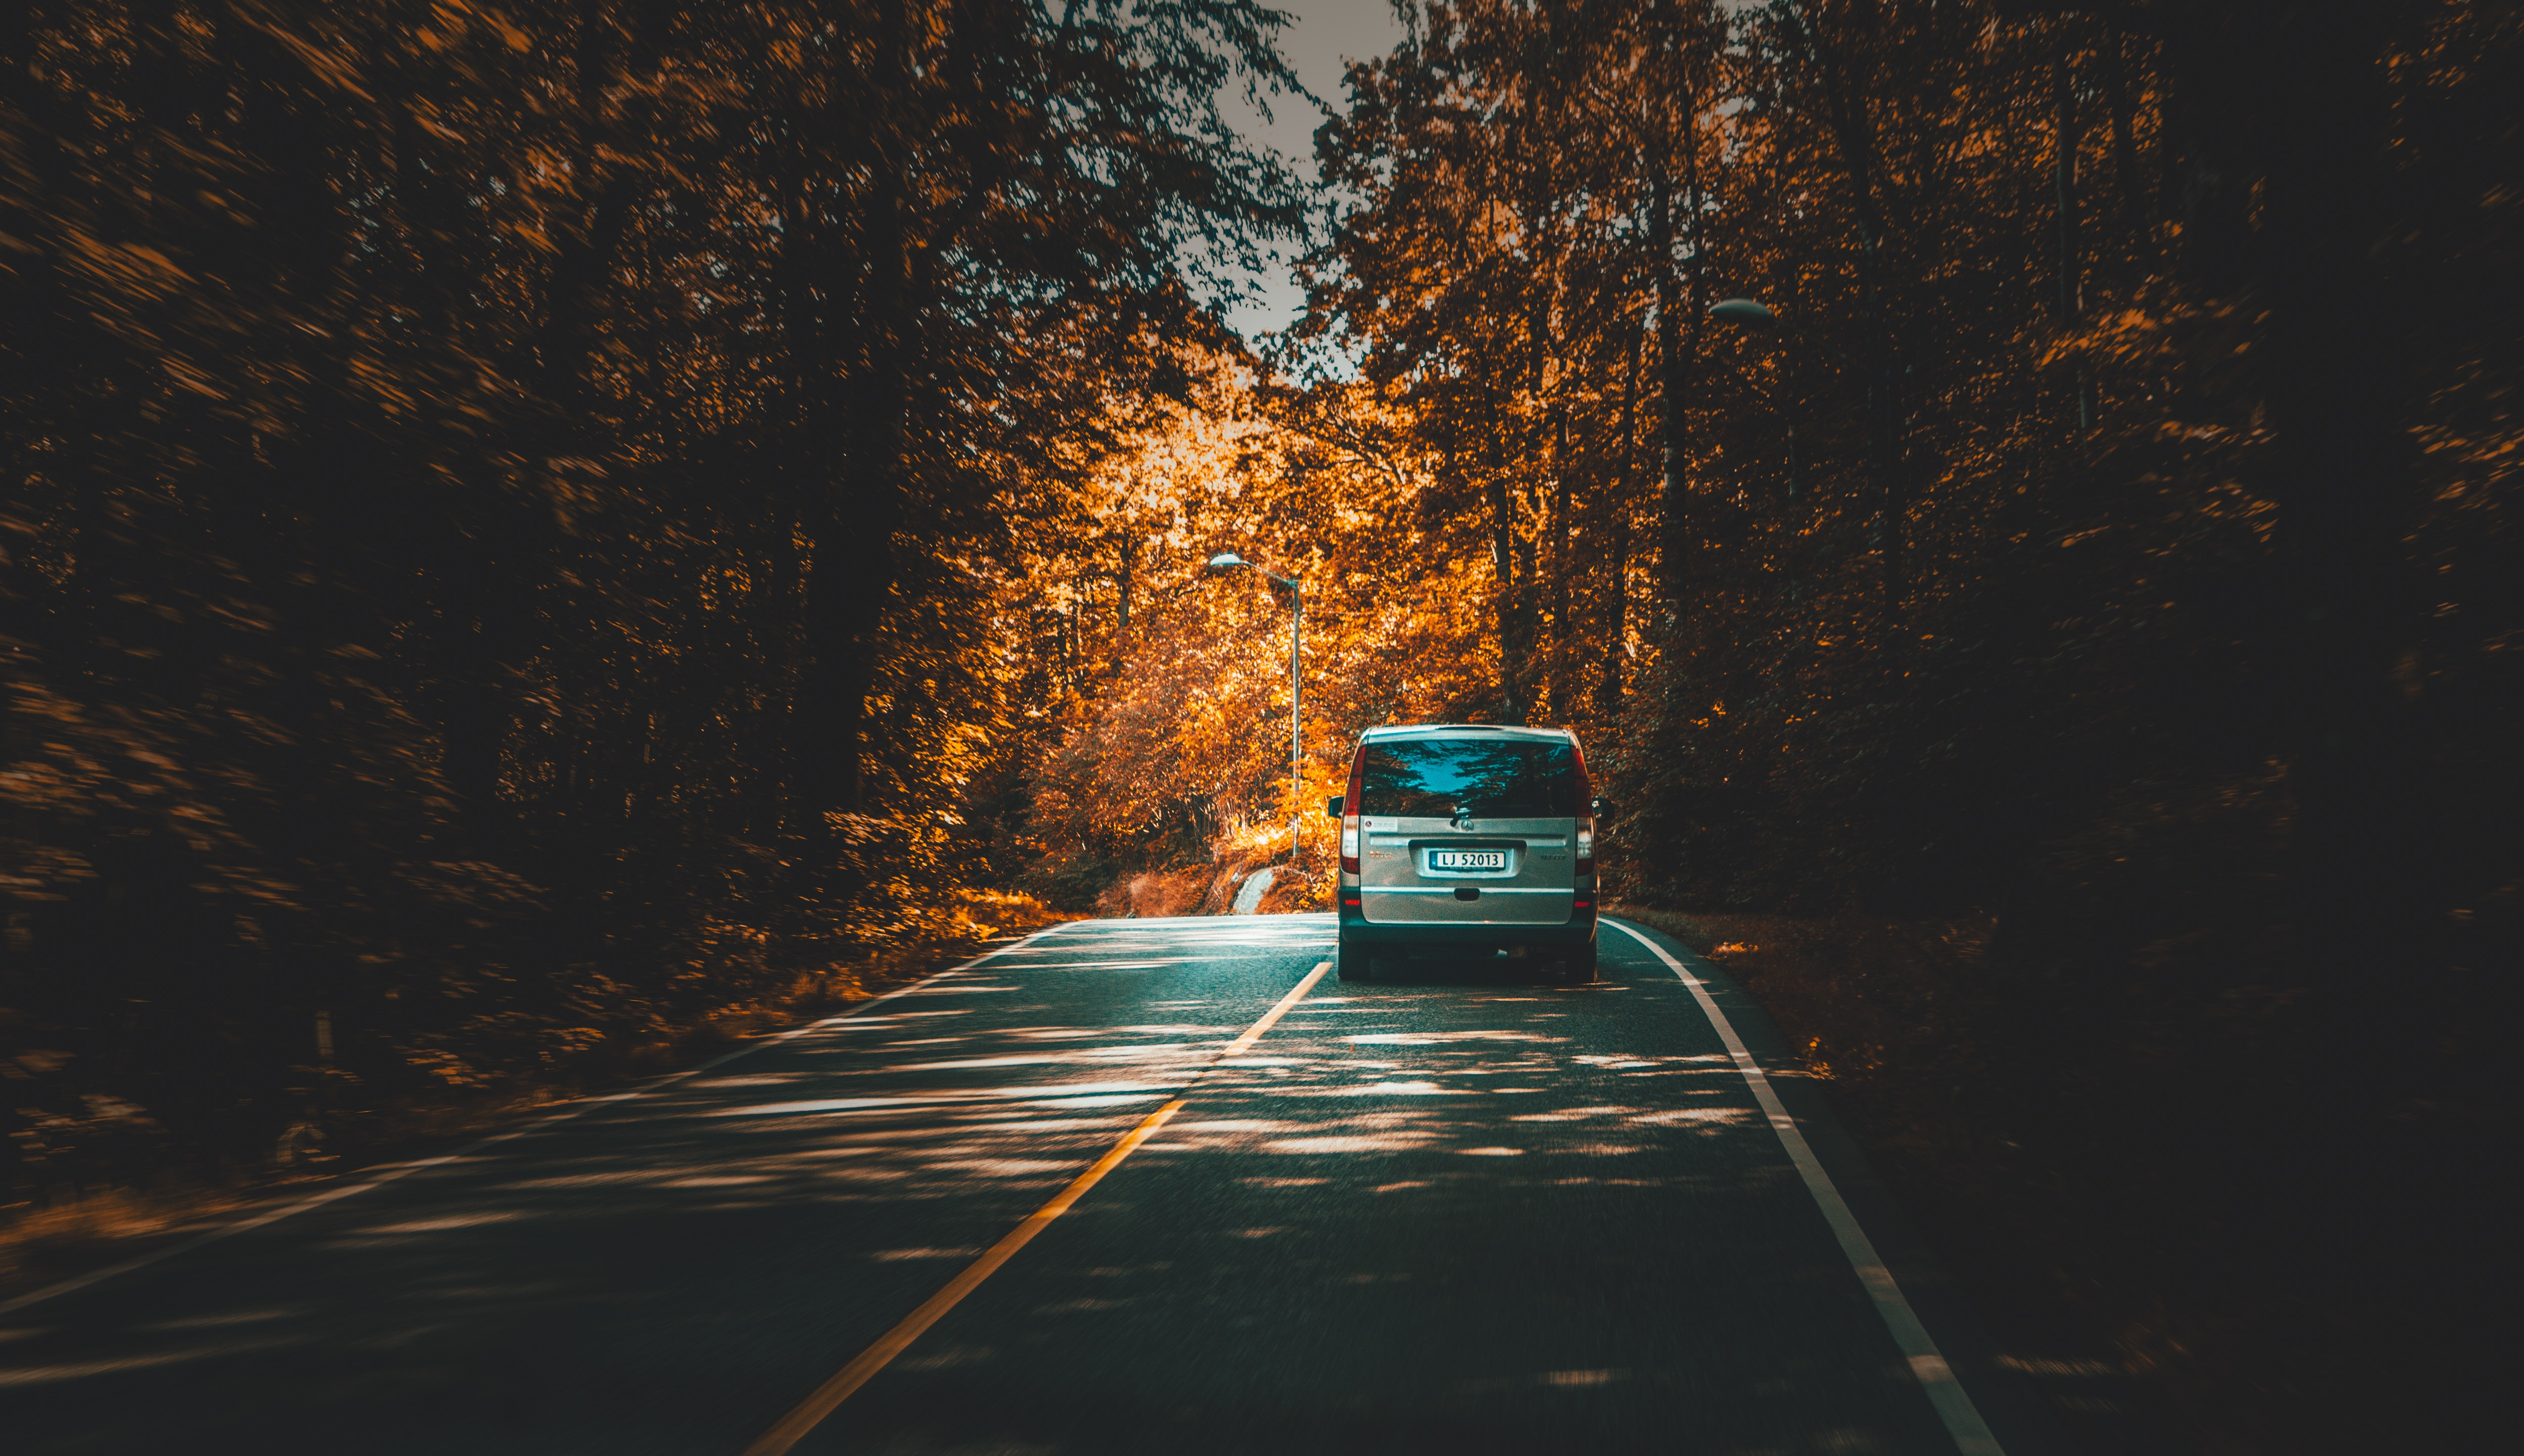 Silver Van Traveling on Highway Lined With Trees during Daytime, Asphalt, Road, Van, Trees, HQ Photo